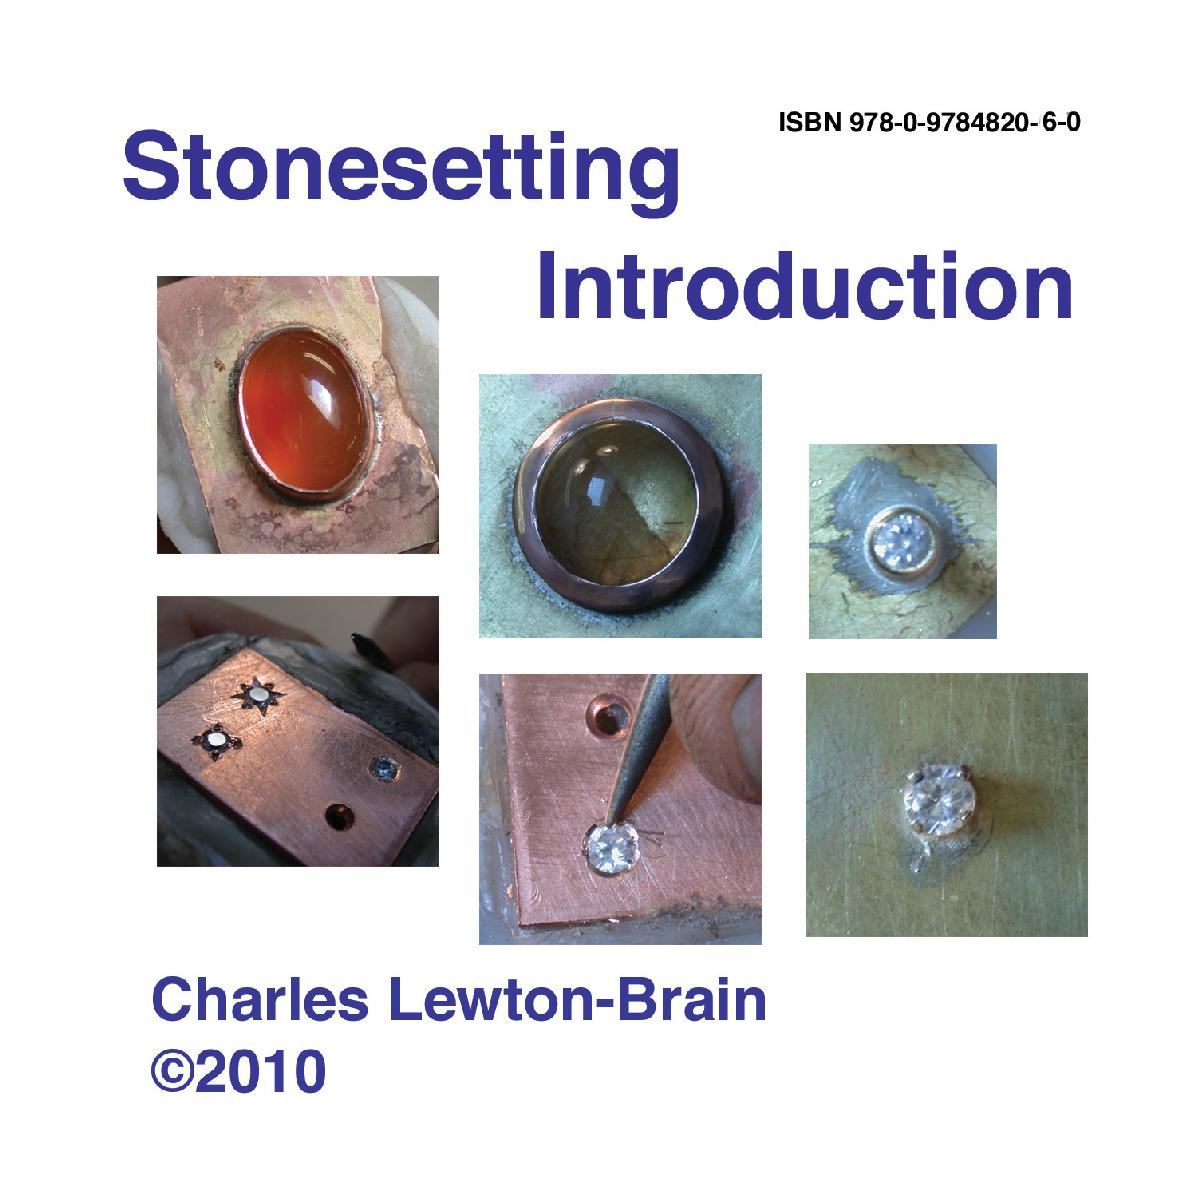 Stonesetting Introduction by Charles Lewton-Brain (CD-ROM)